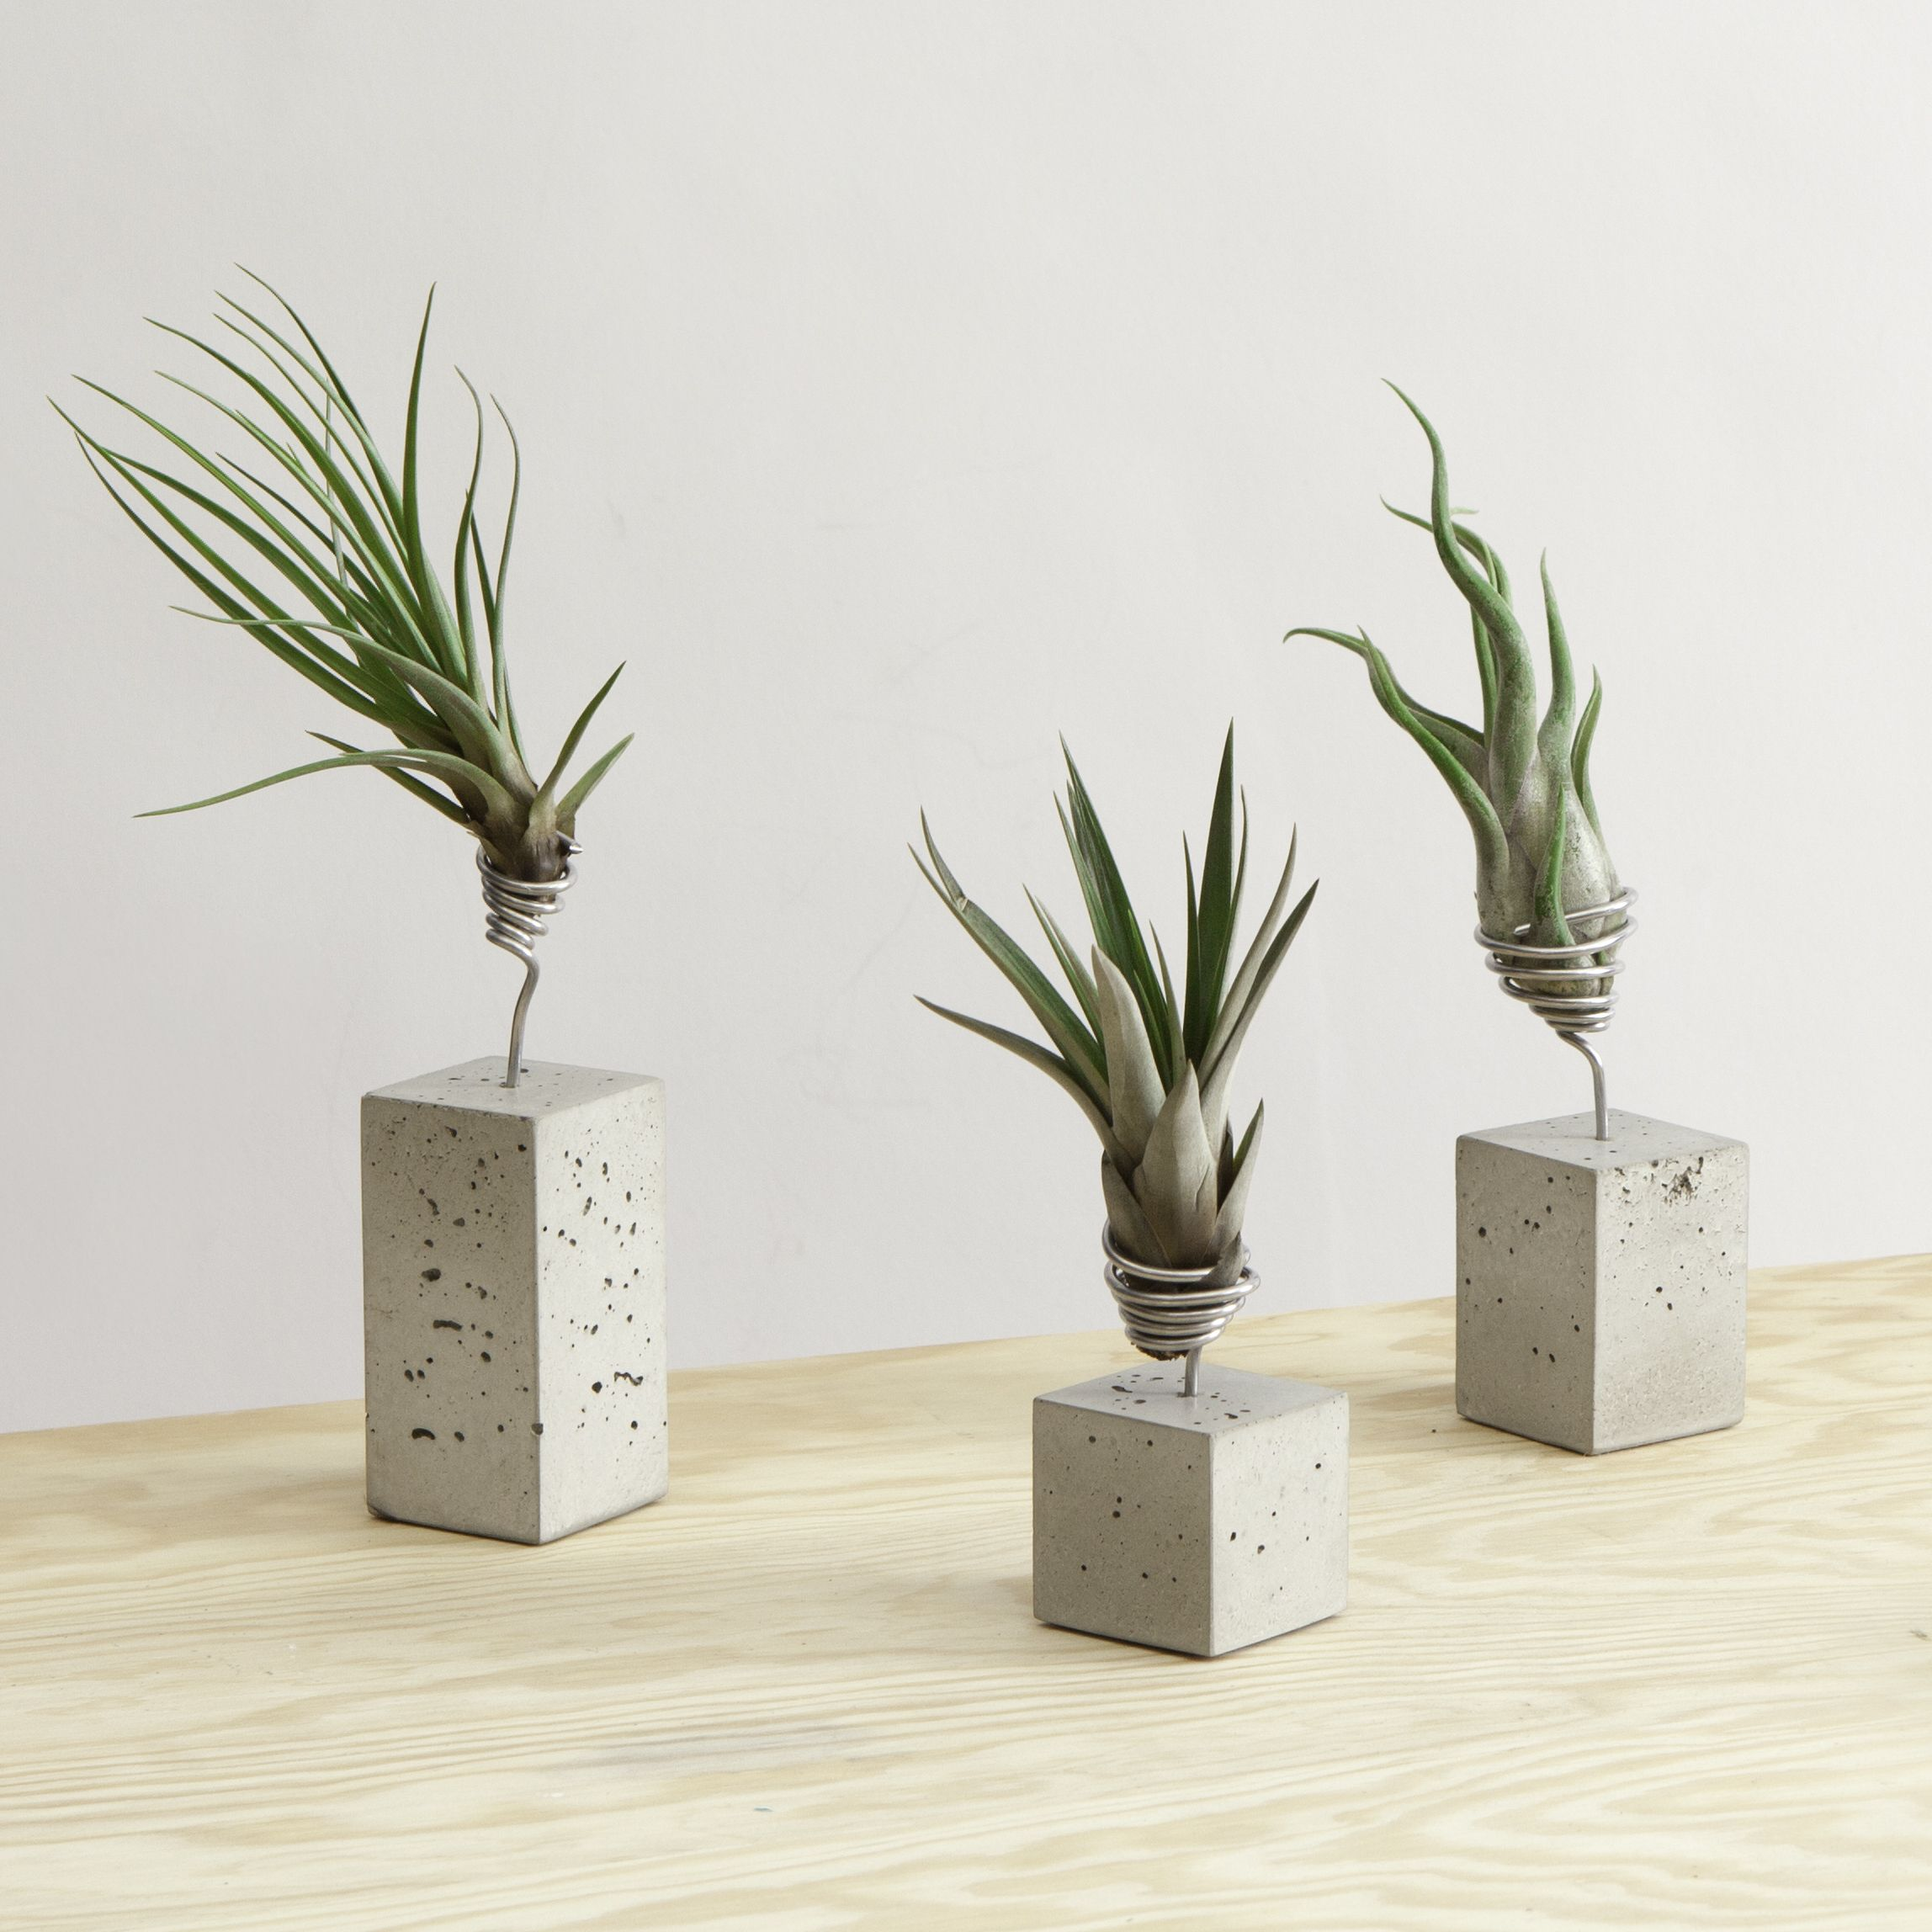 Diy inspiration concrete wire air plant holders air for Air plant holder ideas